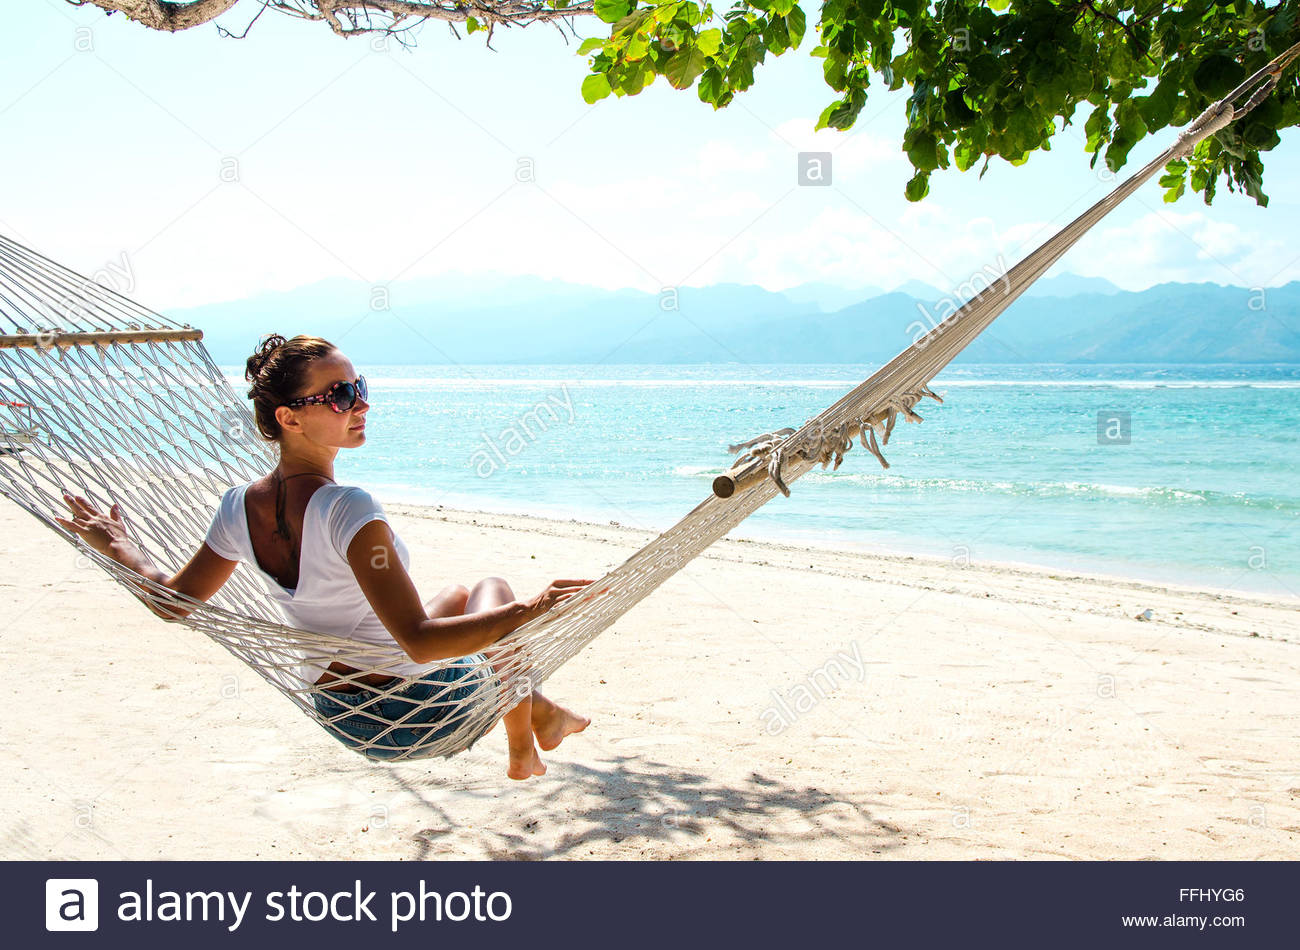 Girl relaxing in hammock on the beach near blue ocean. Bali, Indonesia. Stock image. - Stock Image